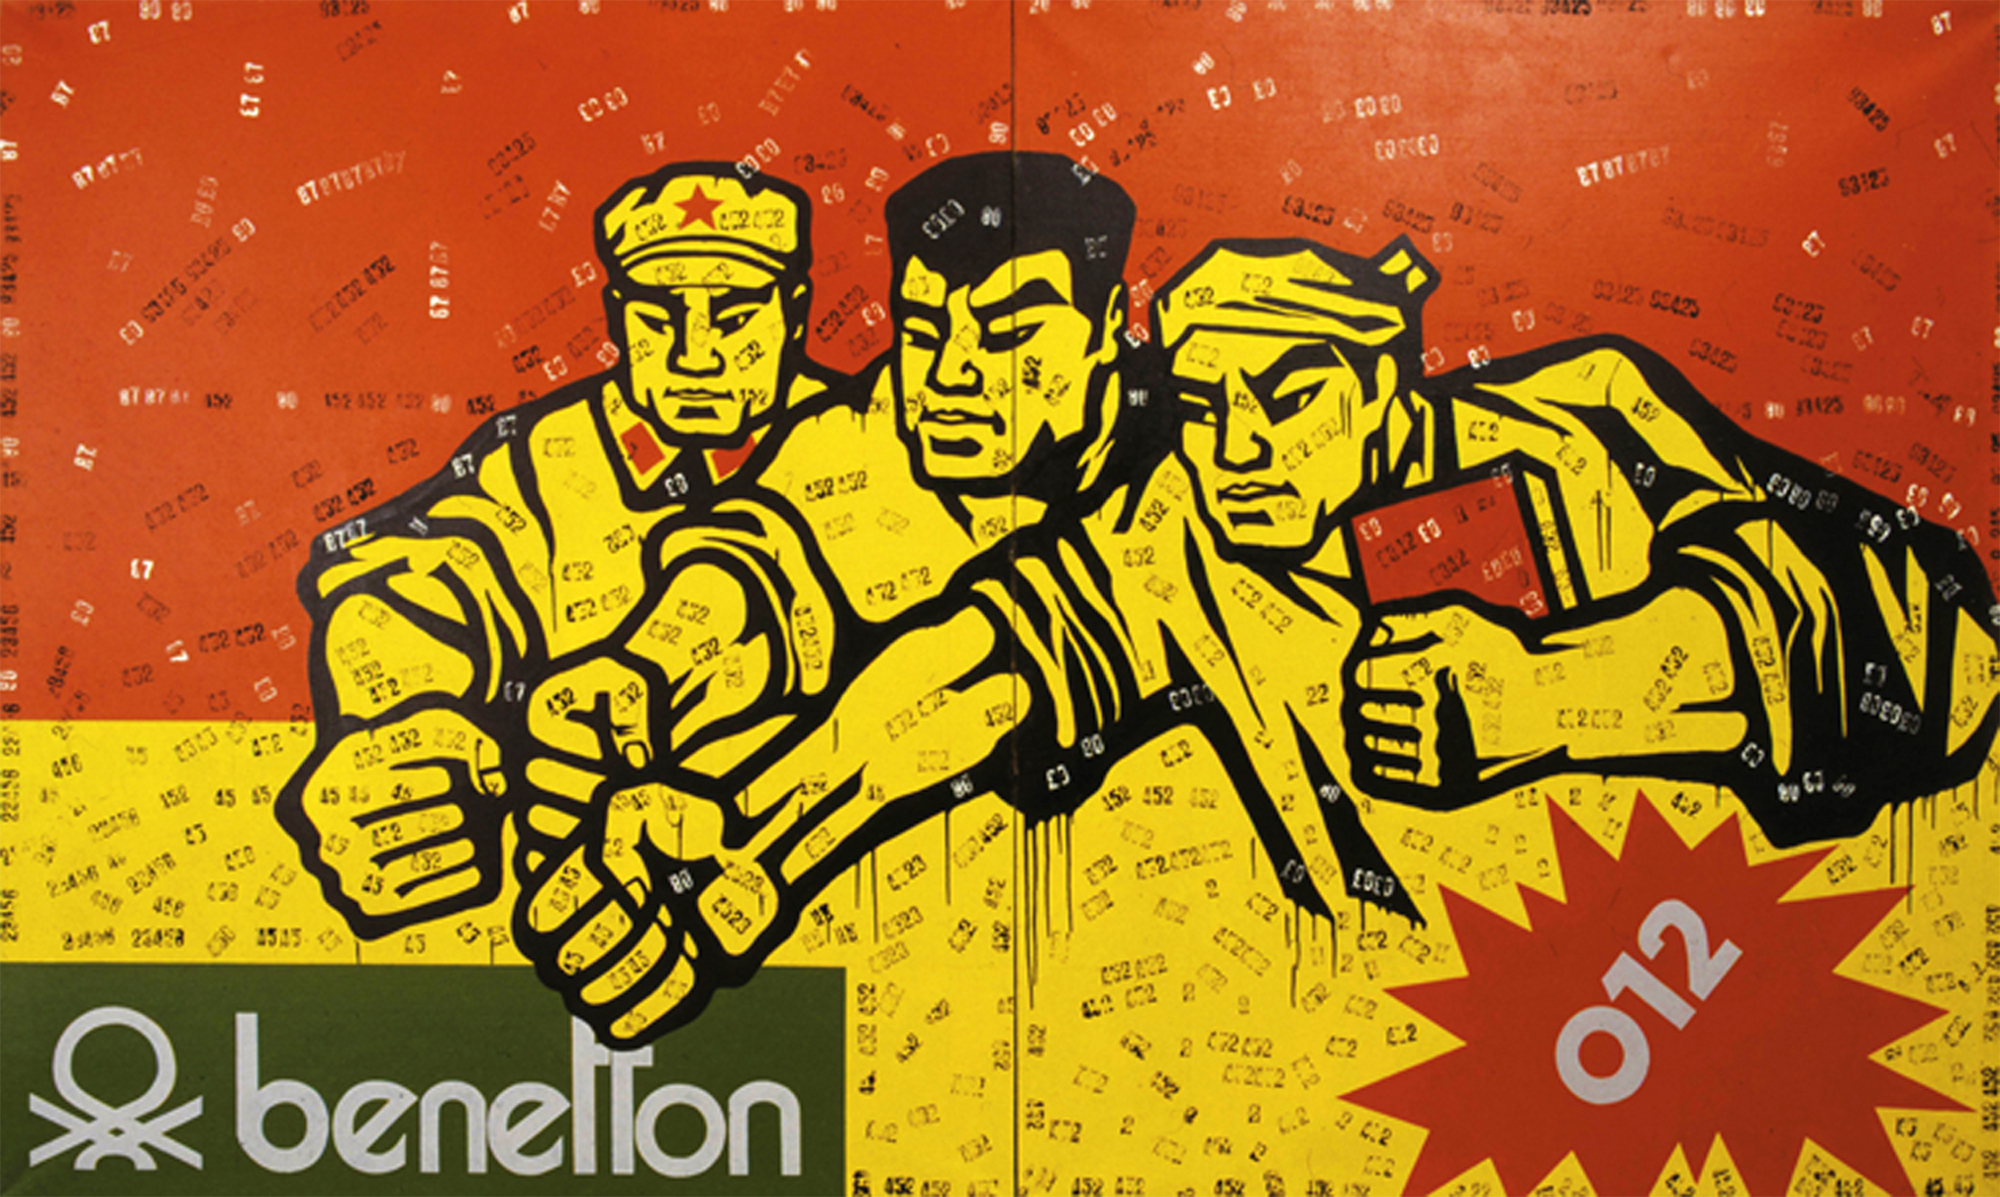 WANG GUANGYI Great Criticism: Benetton, 1992 Oil on canvas 200 x 340cm Image courtesy of the artist